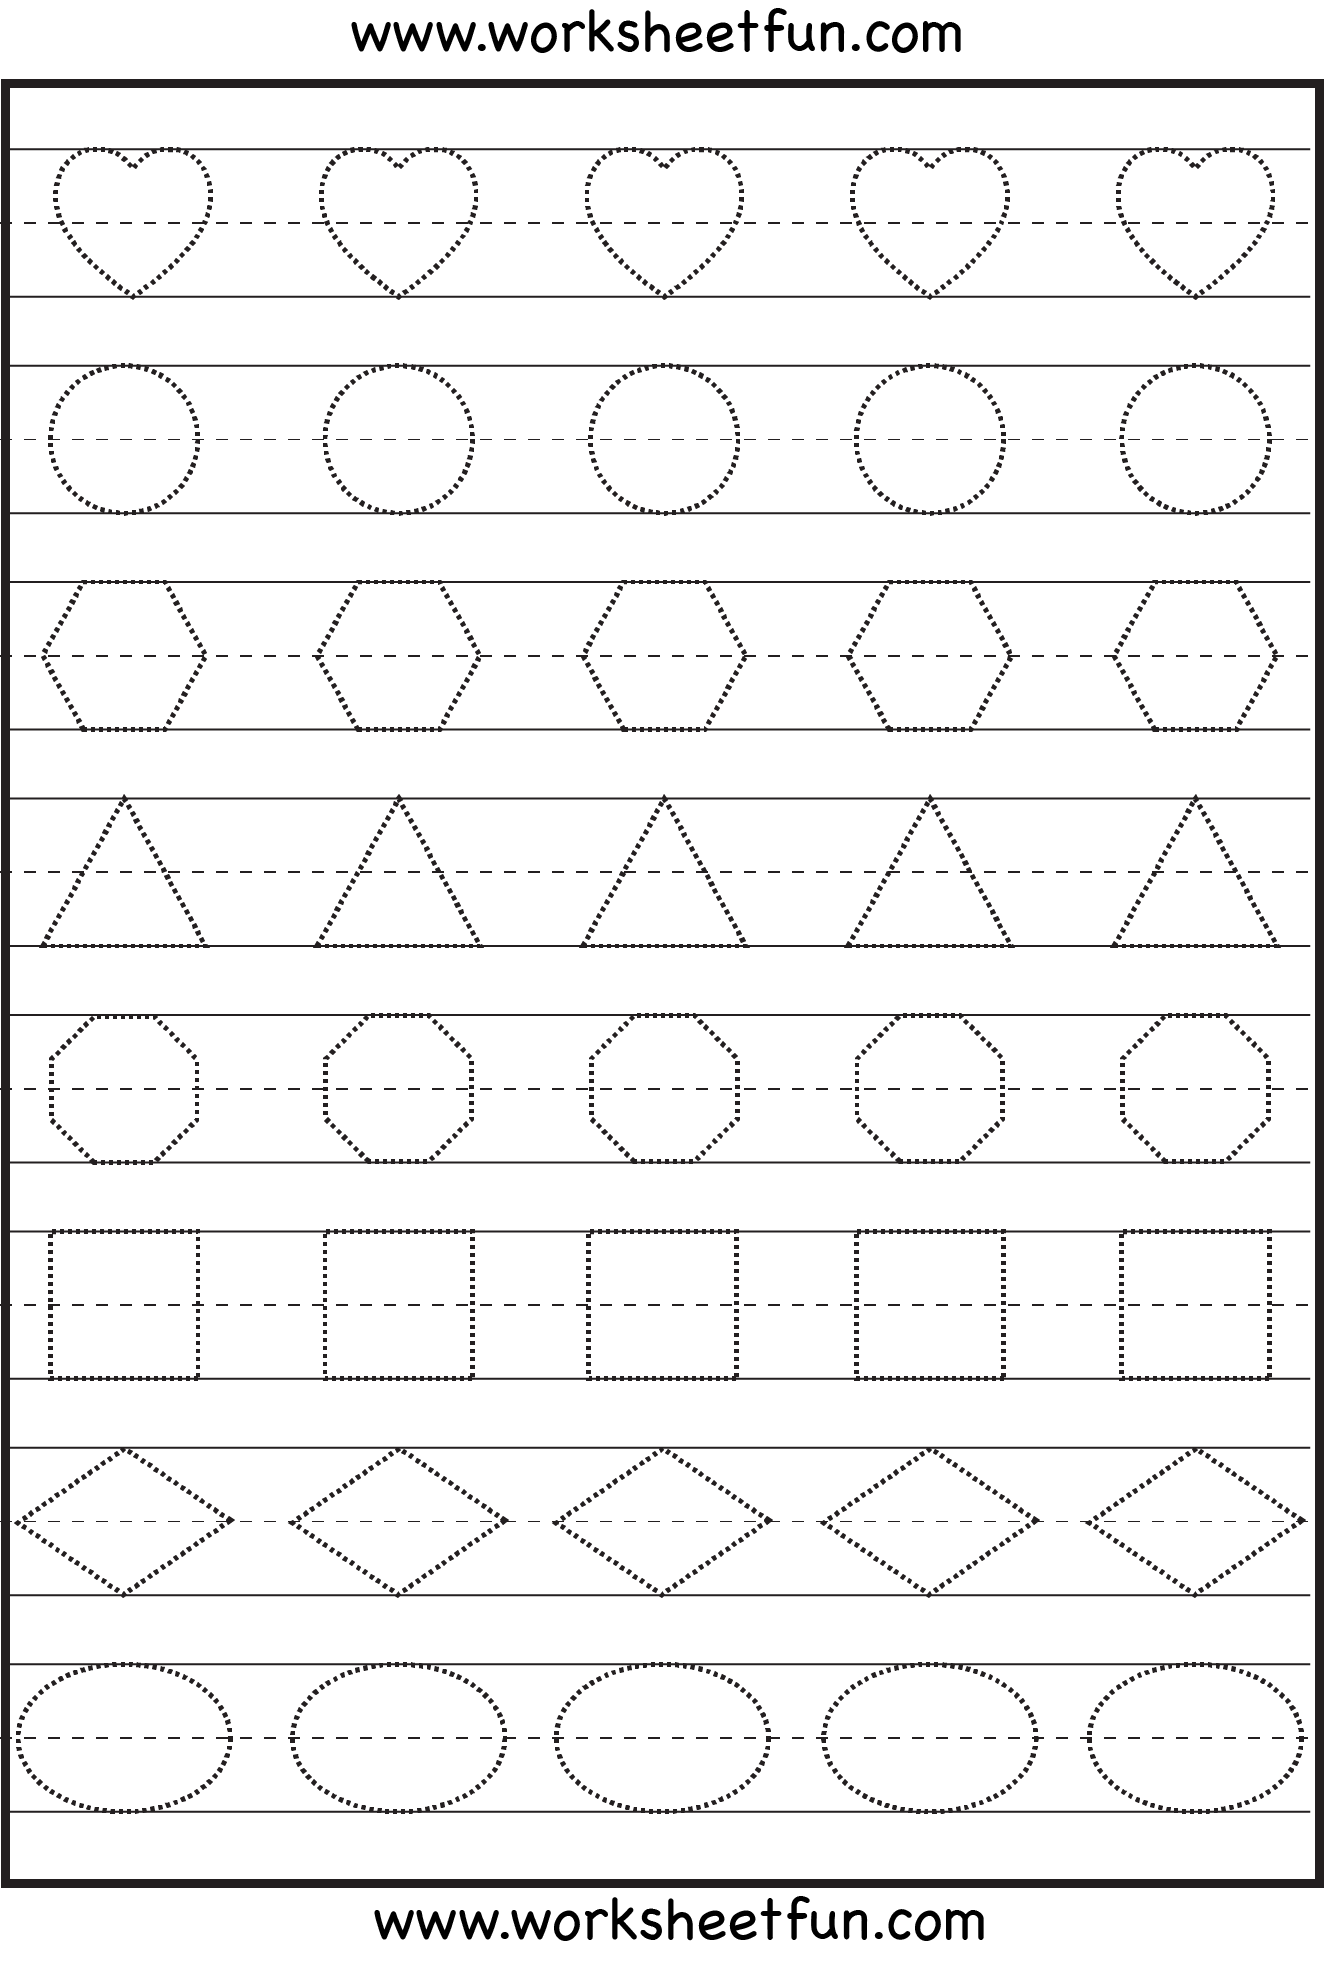 Worksheet Preschool Work Sheets 78 images about school on pinterest printable preschool worksheets and preschool